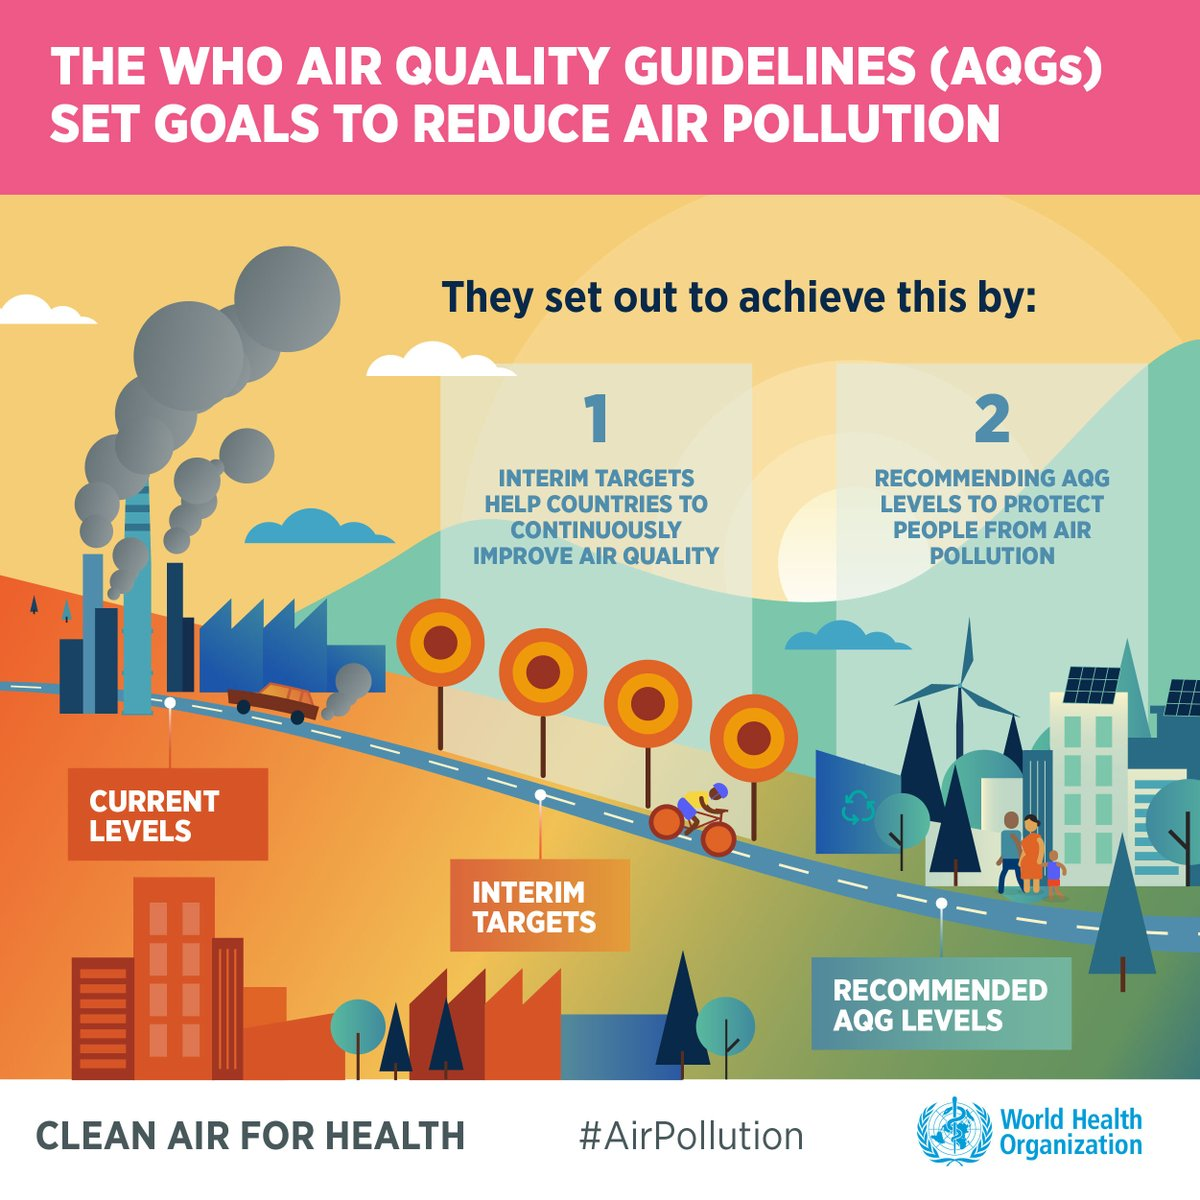 WHO has updated its air quality guidelines, first time in 15 years! Update shows that air pollution is dangerous at much lower levels than previously thought; meeting the new guidelines requires steep reductions in fossil fuels & biomass-burning. OUR TAKE: https://t.co/pDDPTTcLkY